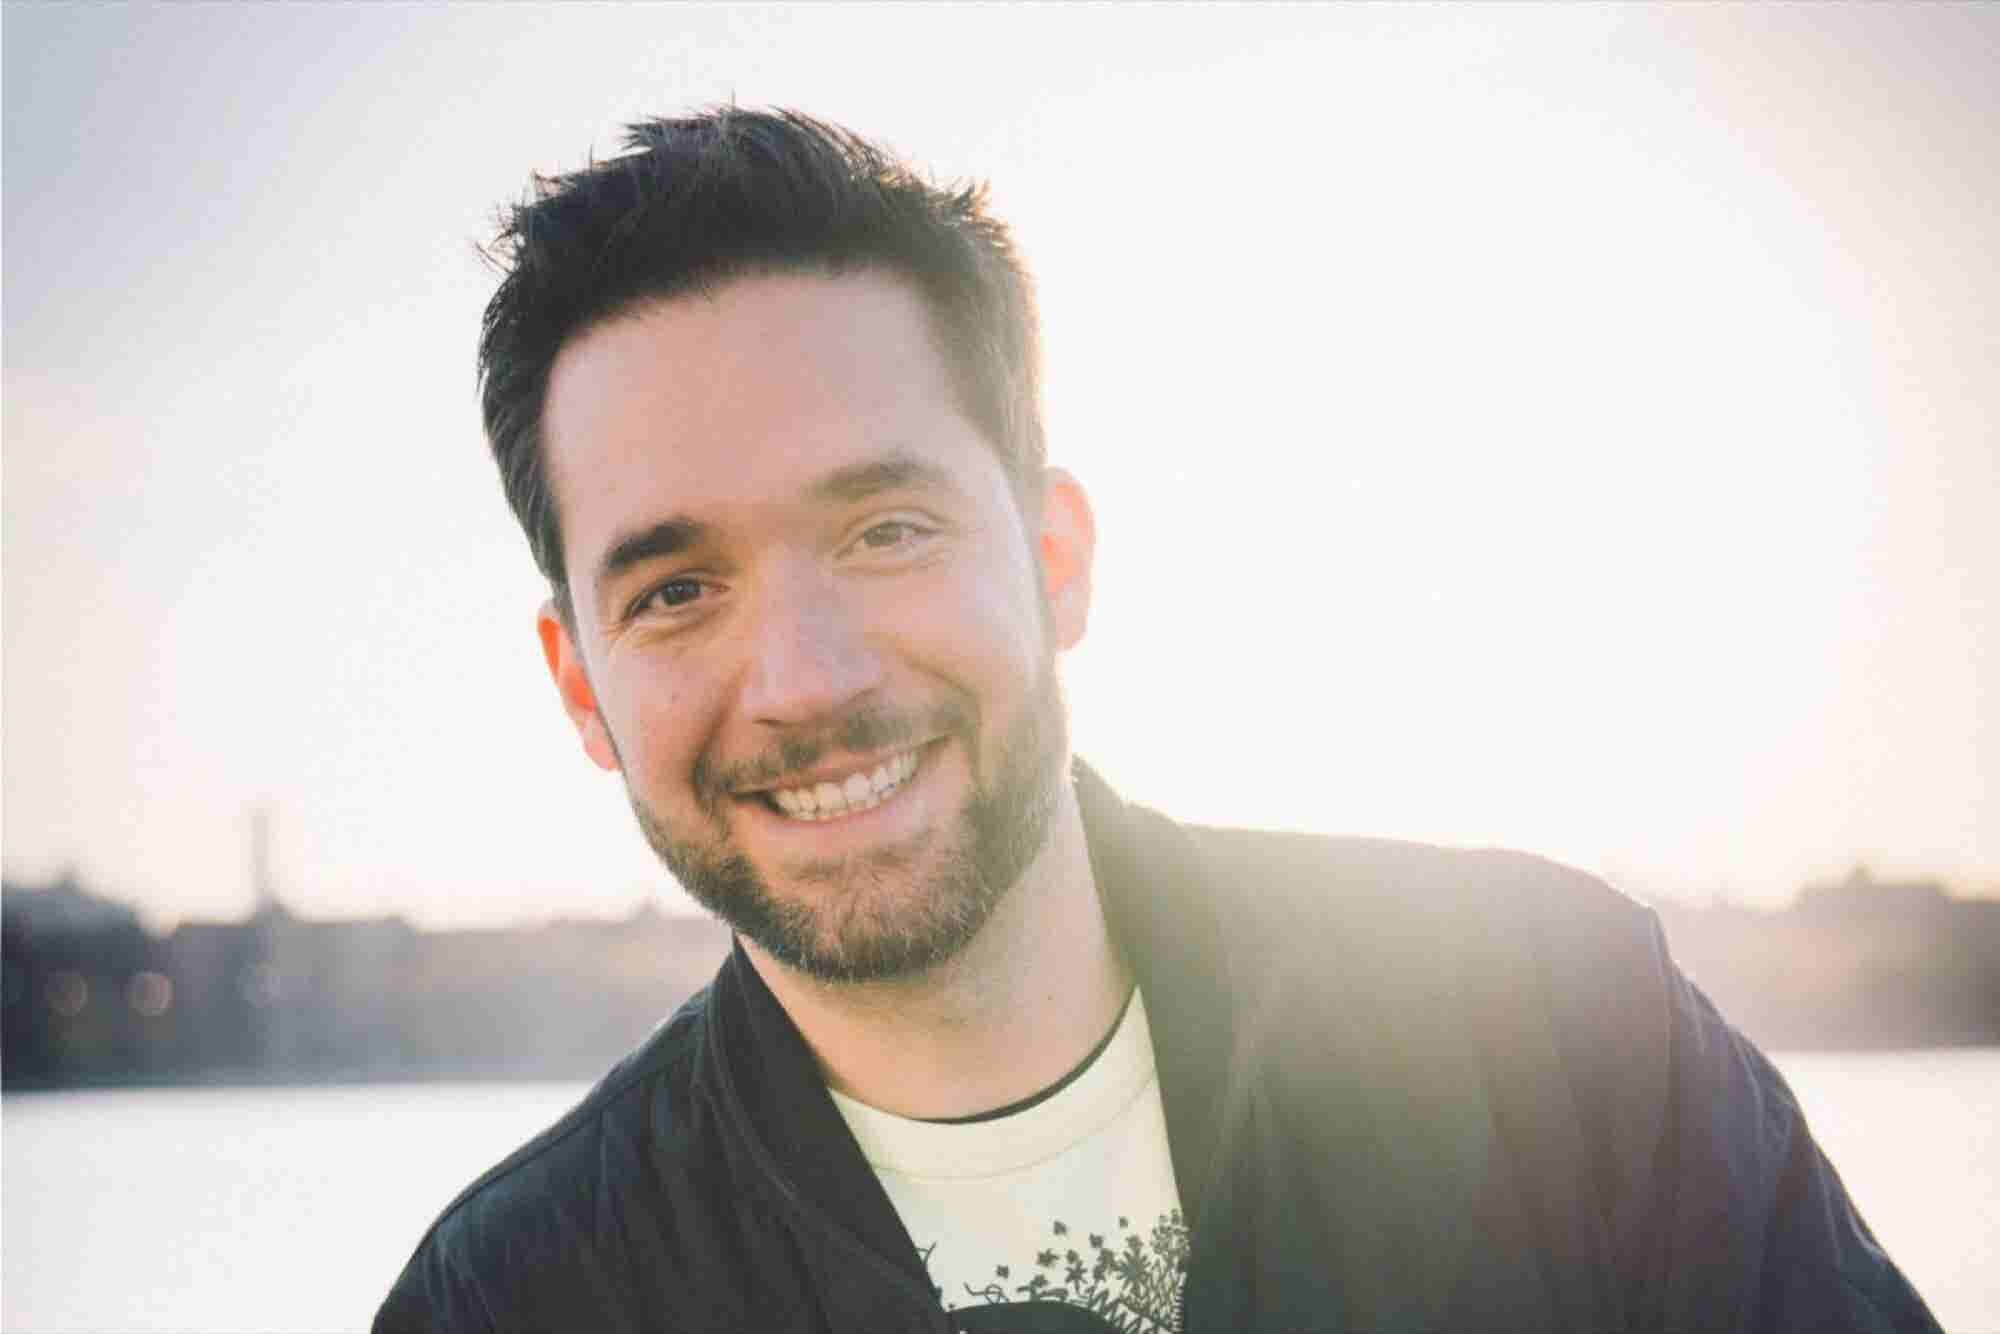 Reddit Co-Founder Alexis Ohanian's Top Self-Care Strategies for Entrepreneurs